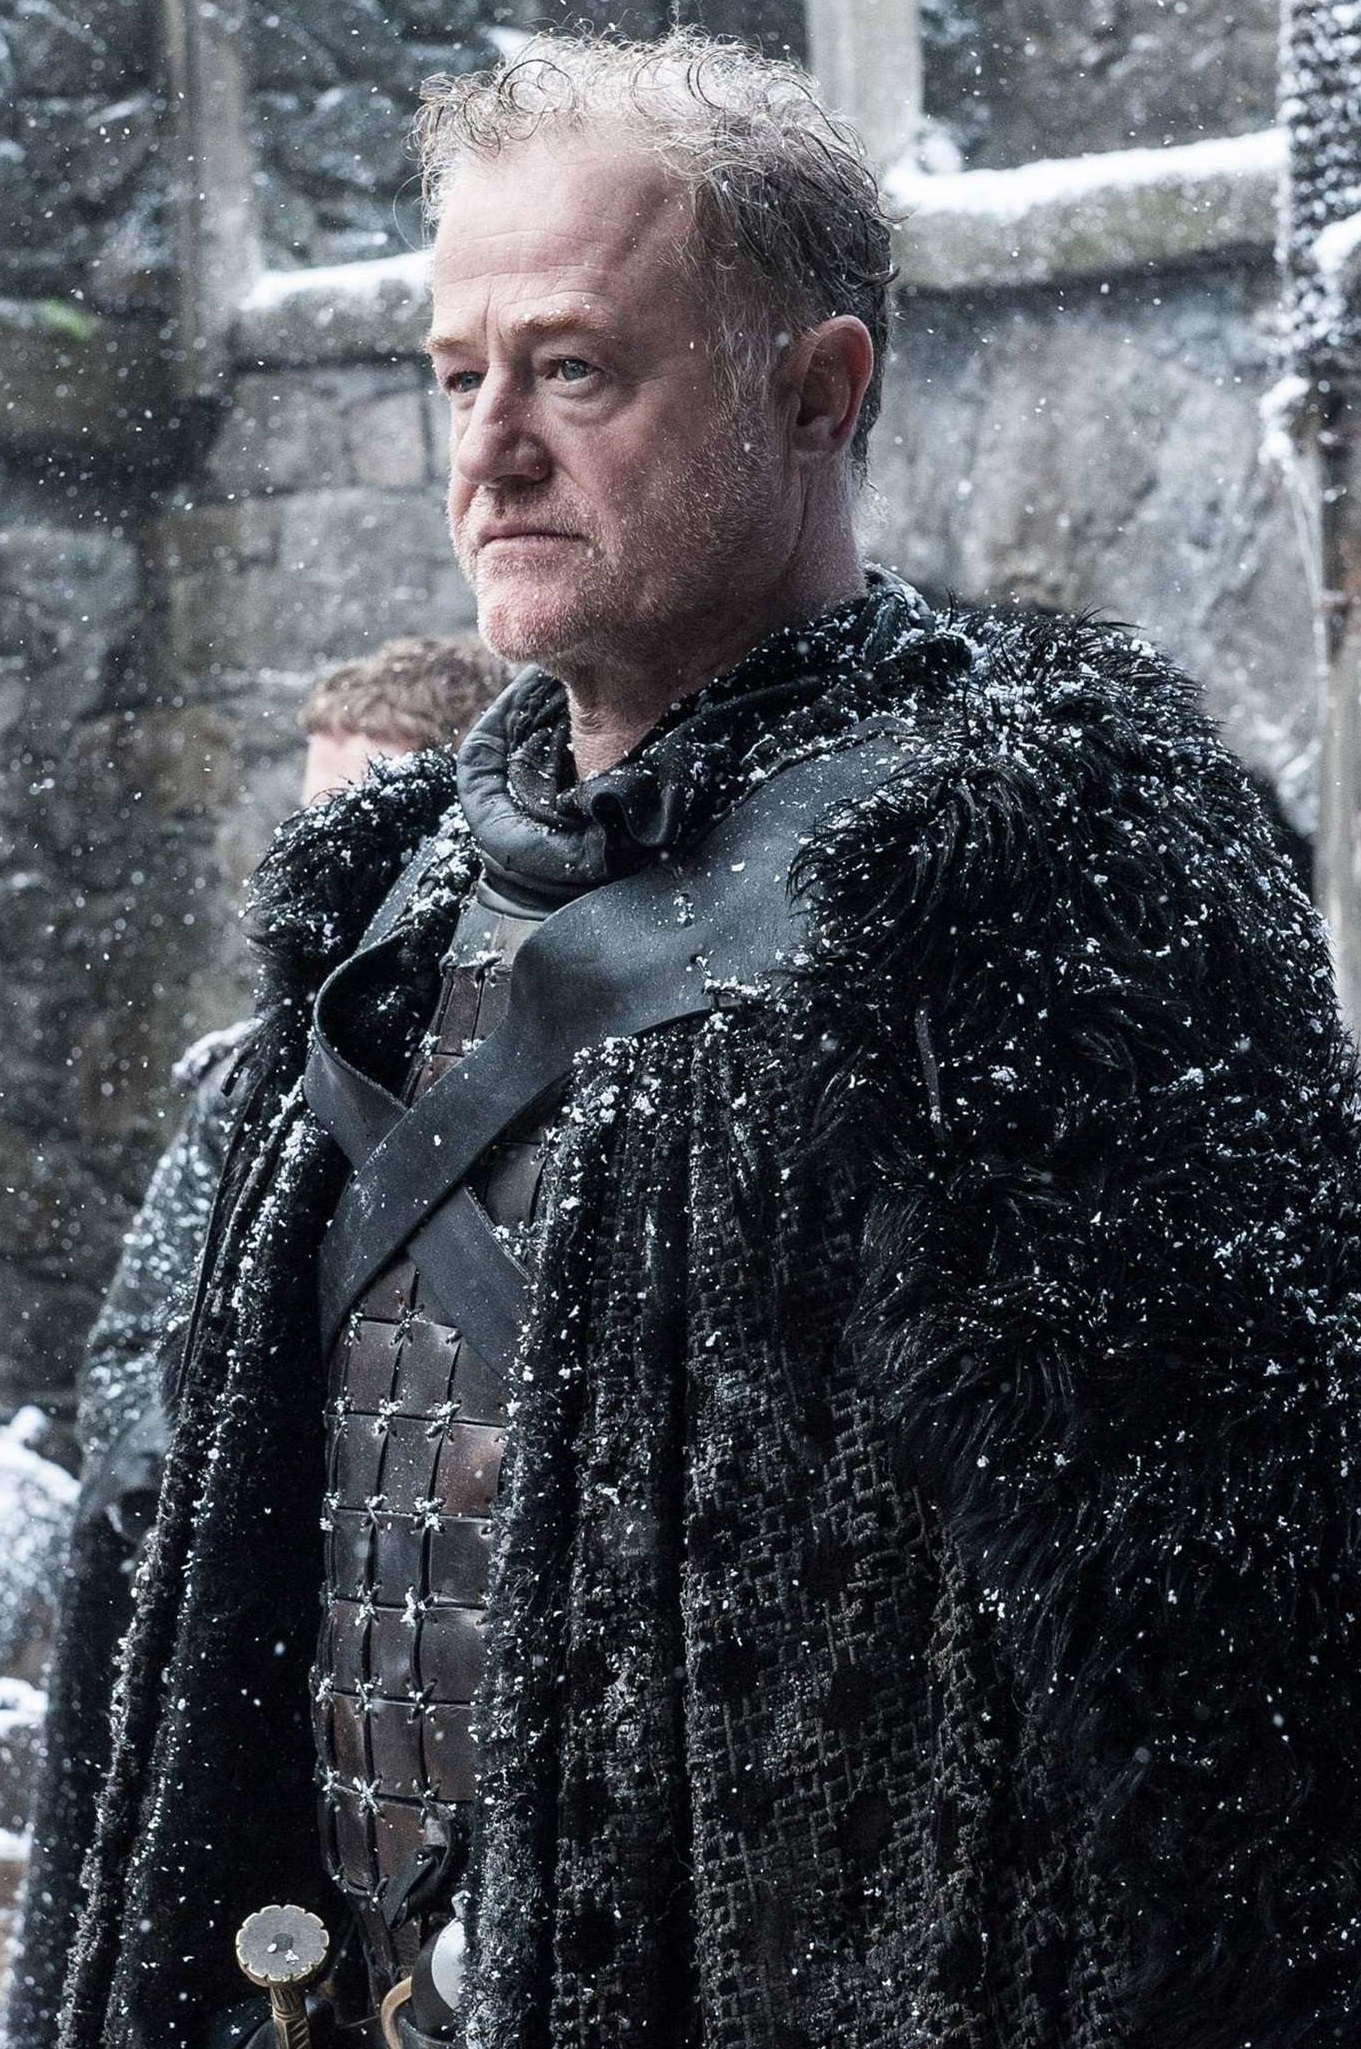 S.To Game Of Thrones